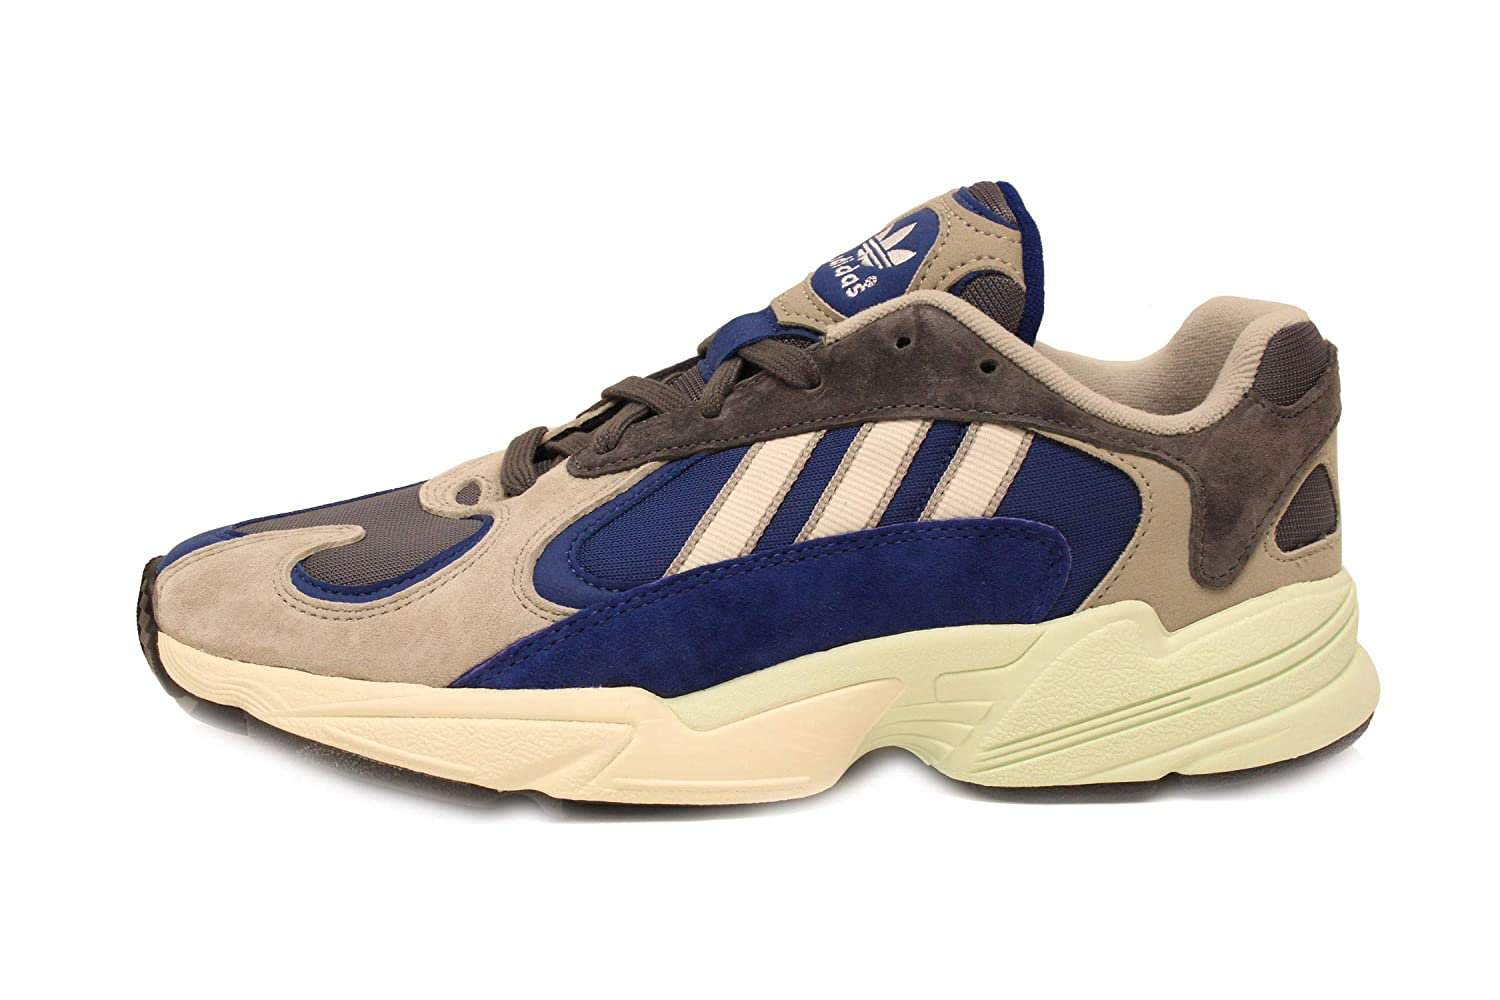 new styles 6f7ab 3d331 Amazon.com   adidas Yung-1 Mens in Sesame Grey   Fashion Sneakers